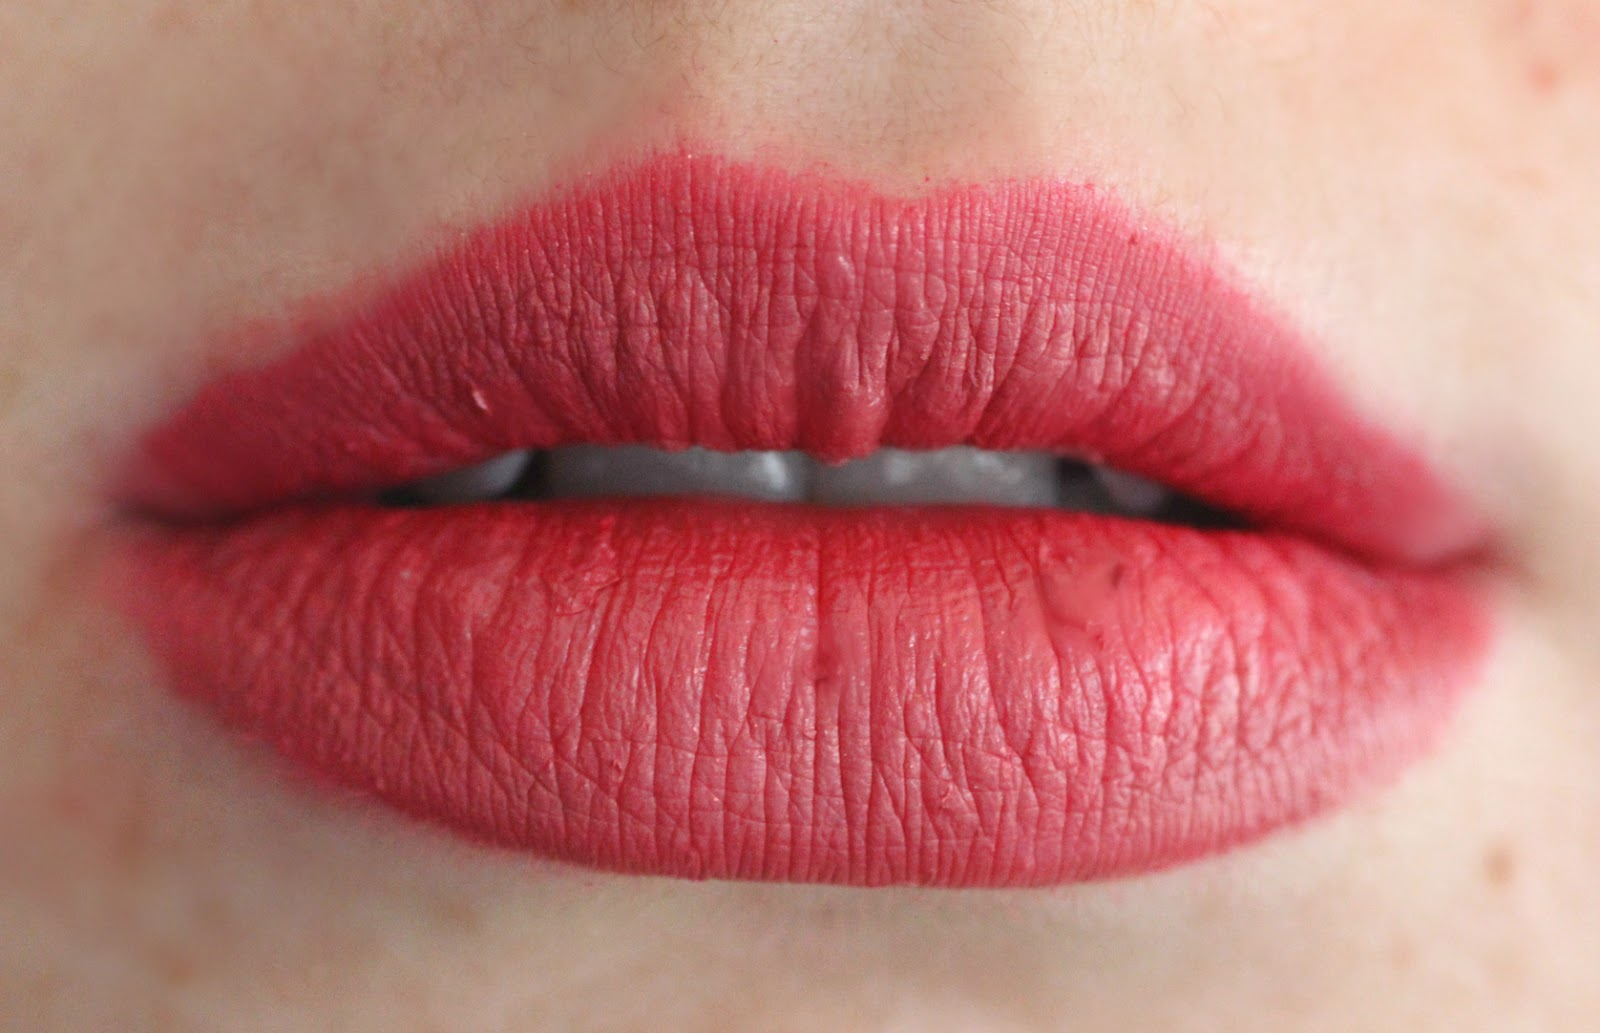 •Rimmel Provocalips Lip Colour - Make your Move 730 review swatches lip swatches lipswatch  גלוסברי בלוג איפור וטיפוח סקירה שפתון עמיד רימל פרובוקליפס